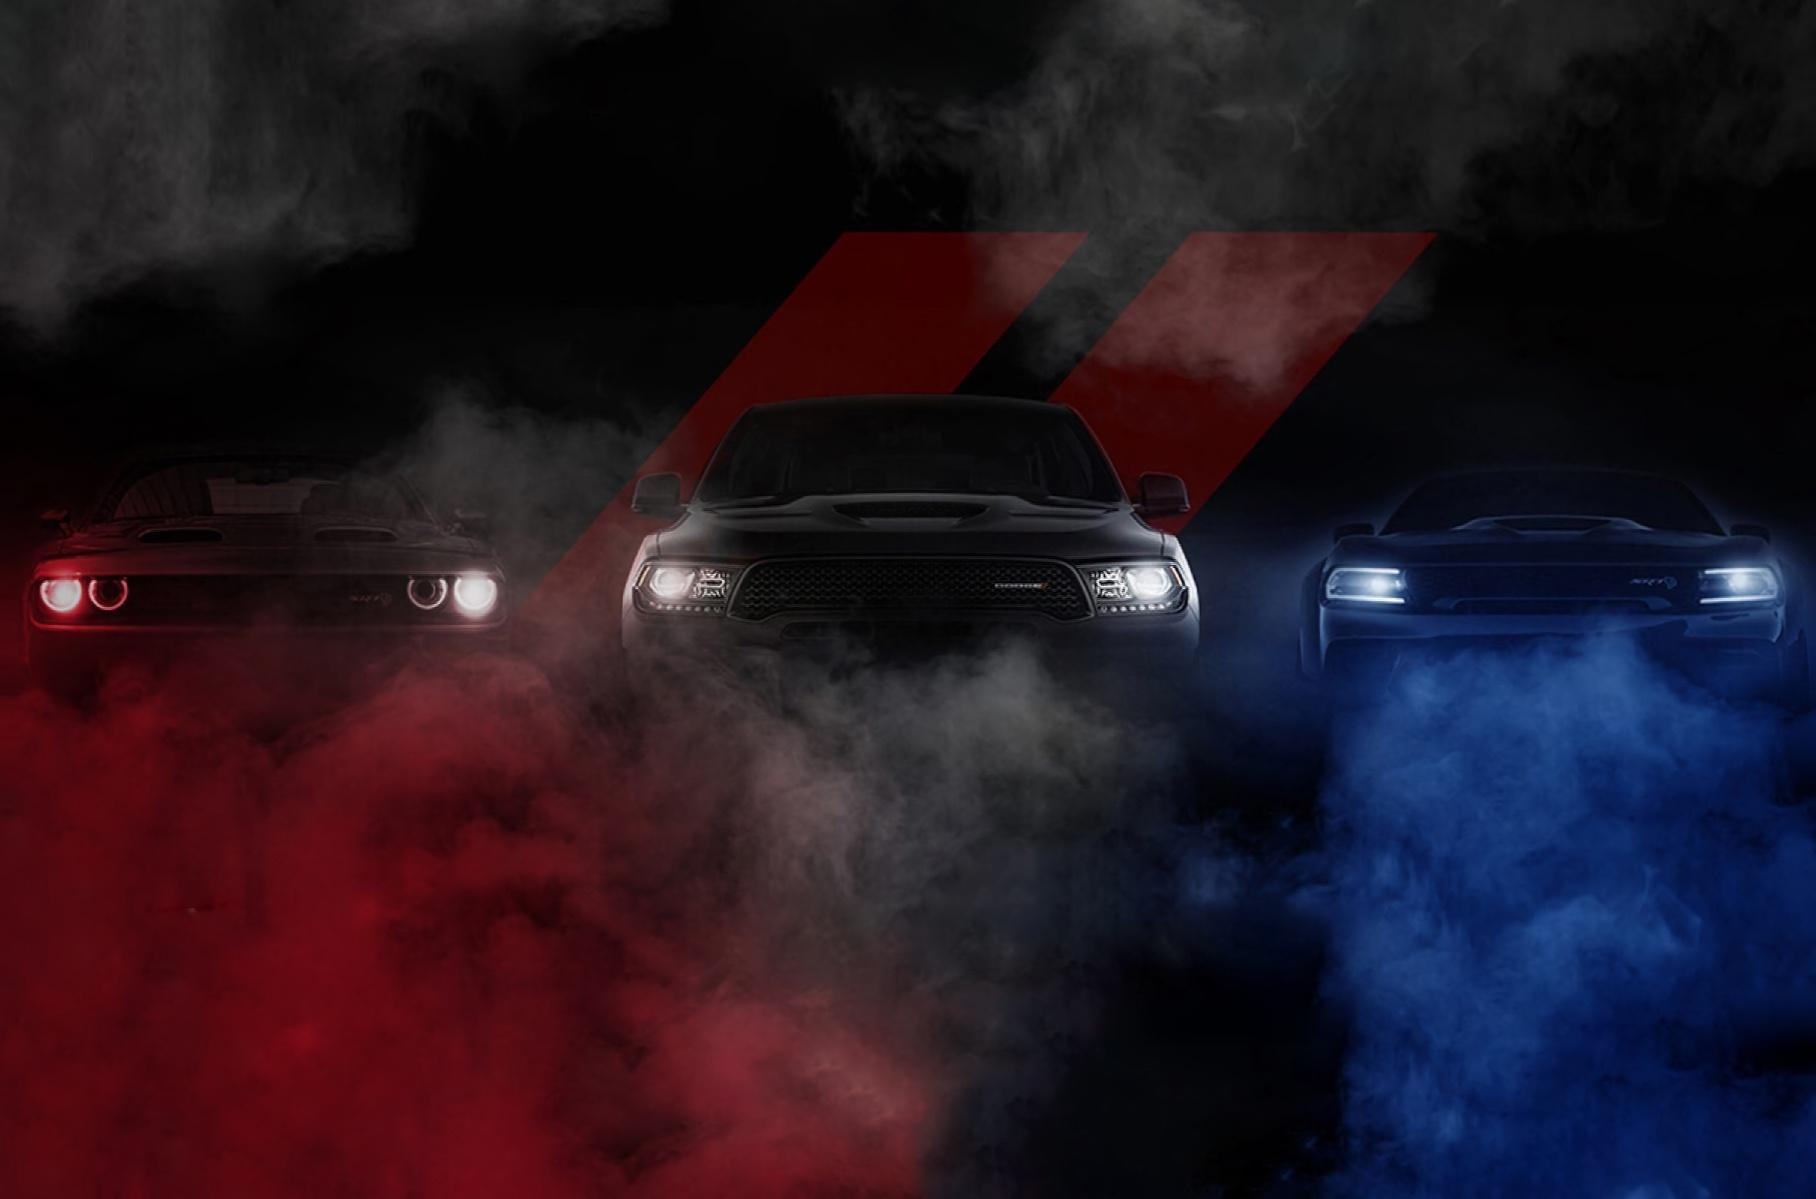 Dodge has surely found an original way to announce its 2021 lineup: in the short teaser video, multiple cars rev up their HEMI engines to produce the musical notes of The Star-Spangled Banner.